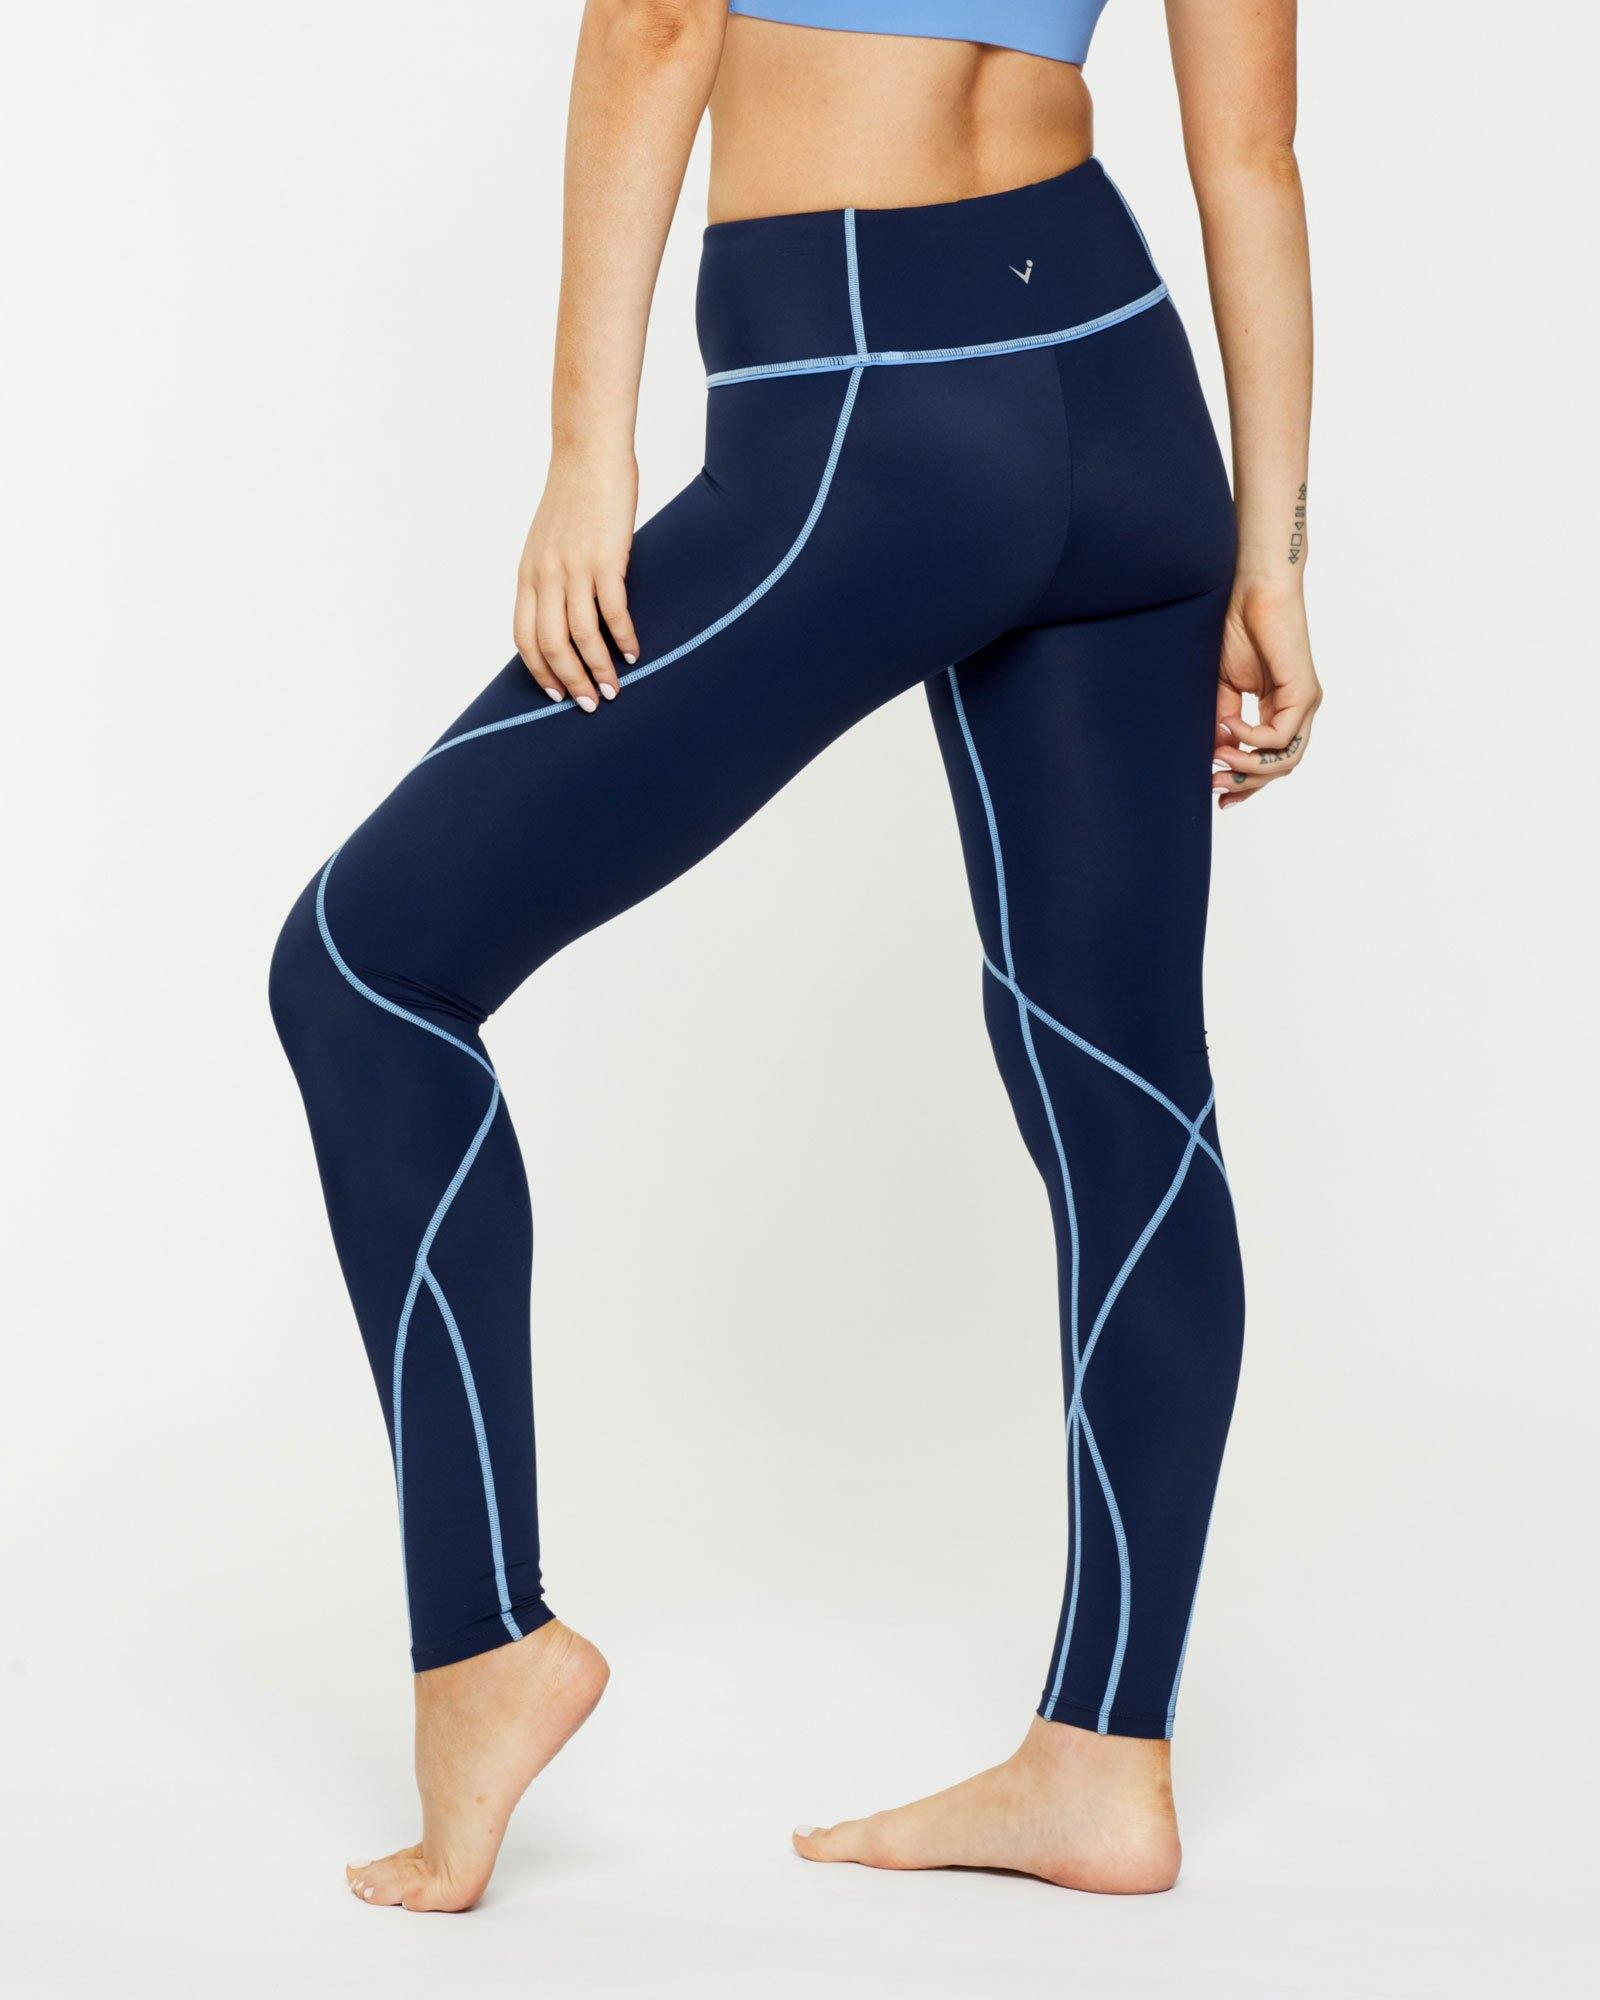 Femininely Vastus mid waist long Navy legging with contrast stitching, side view, for pilates, barre, yoga, gym and studio workouts